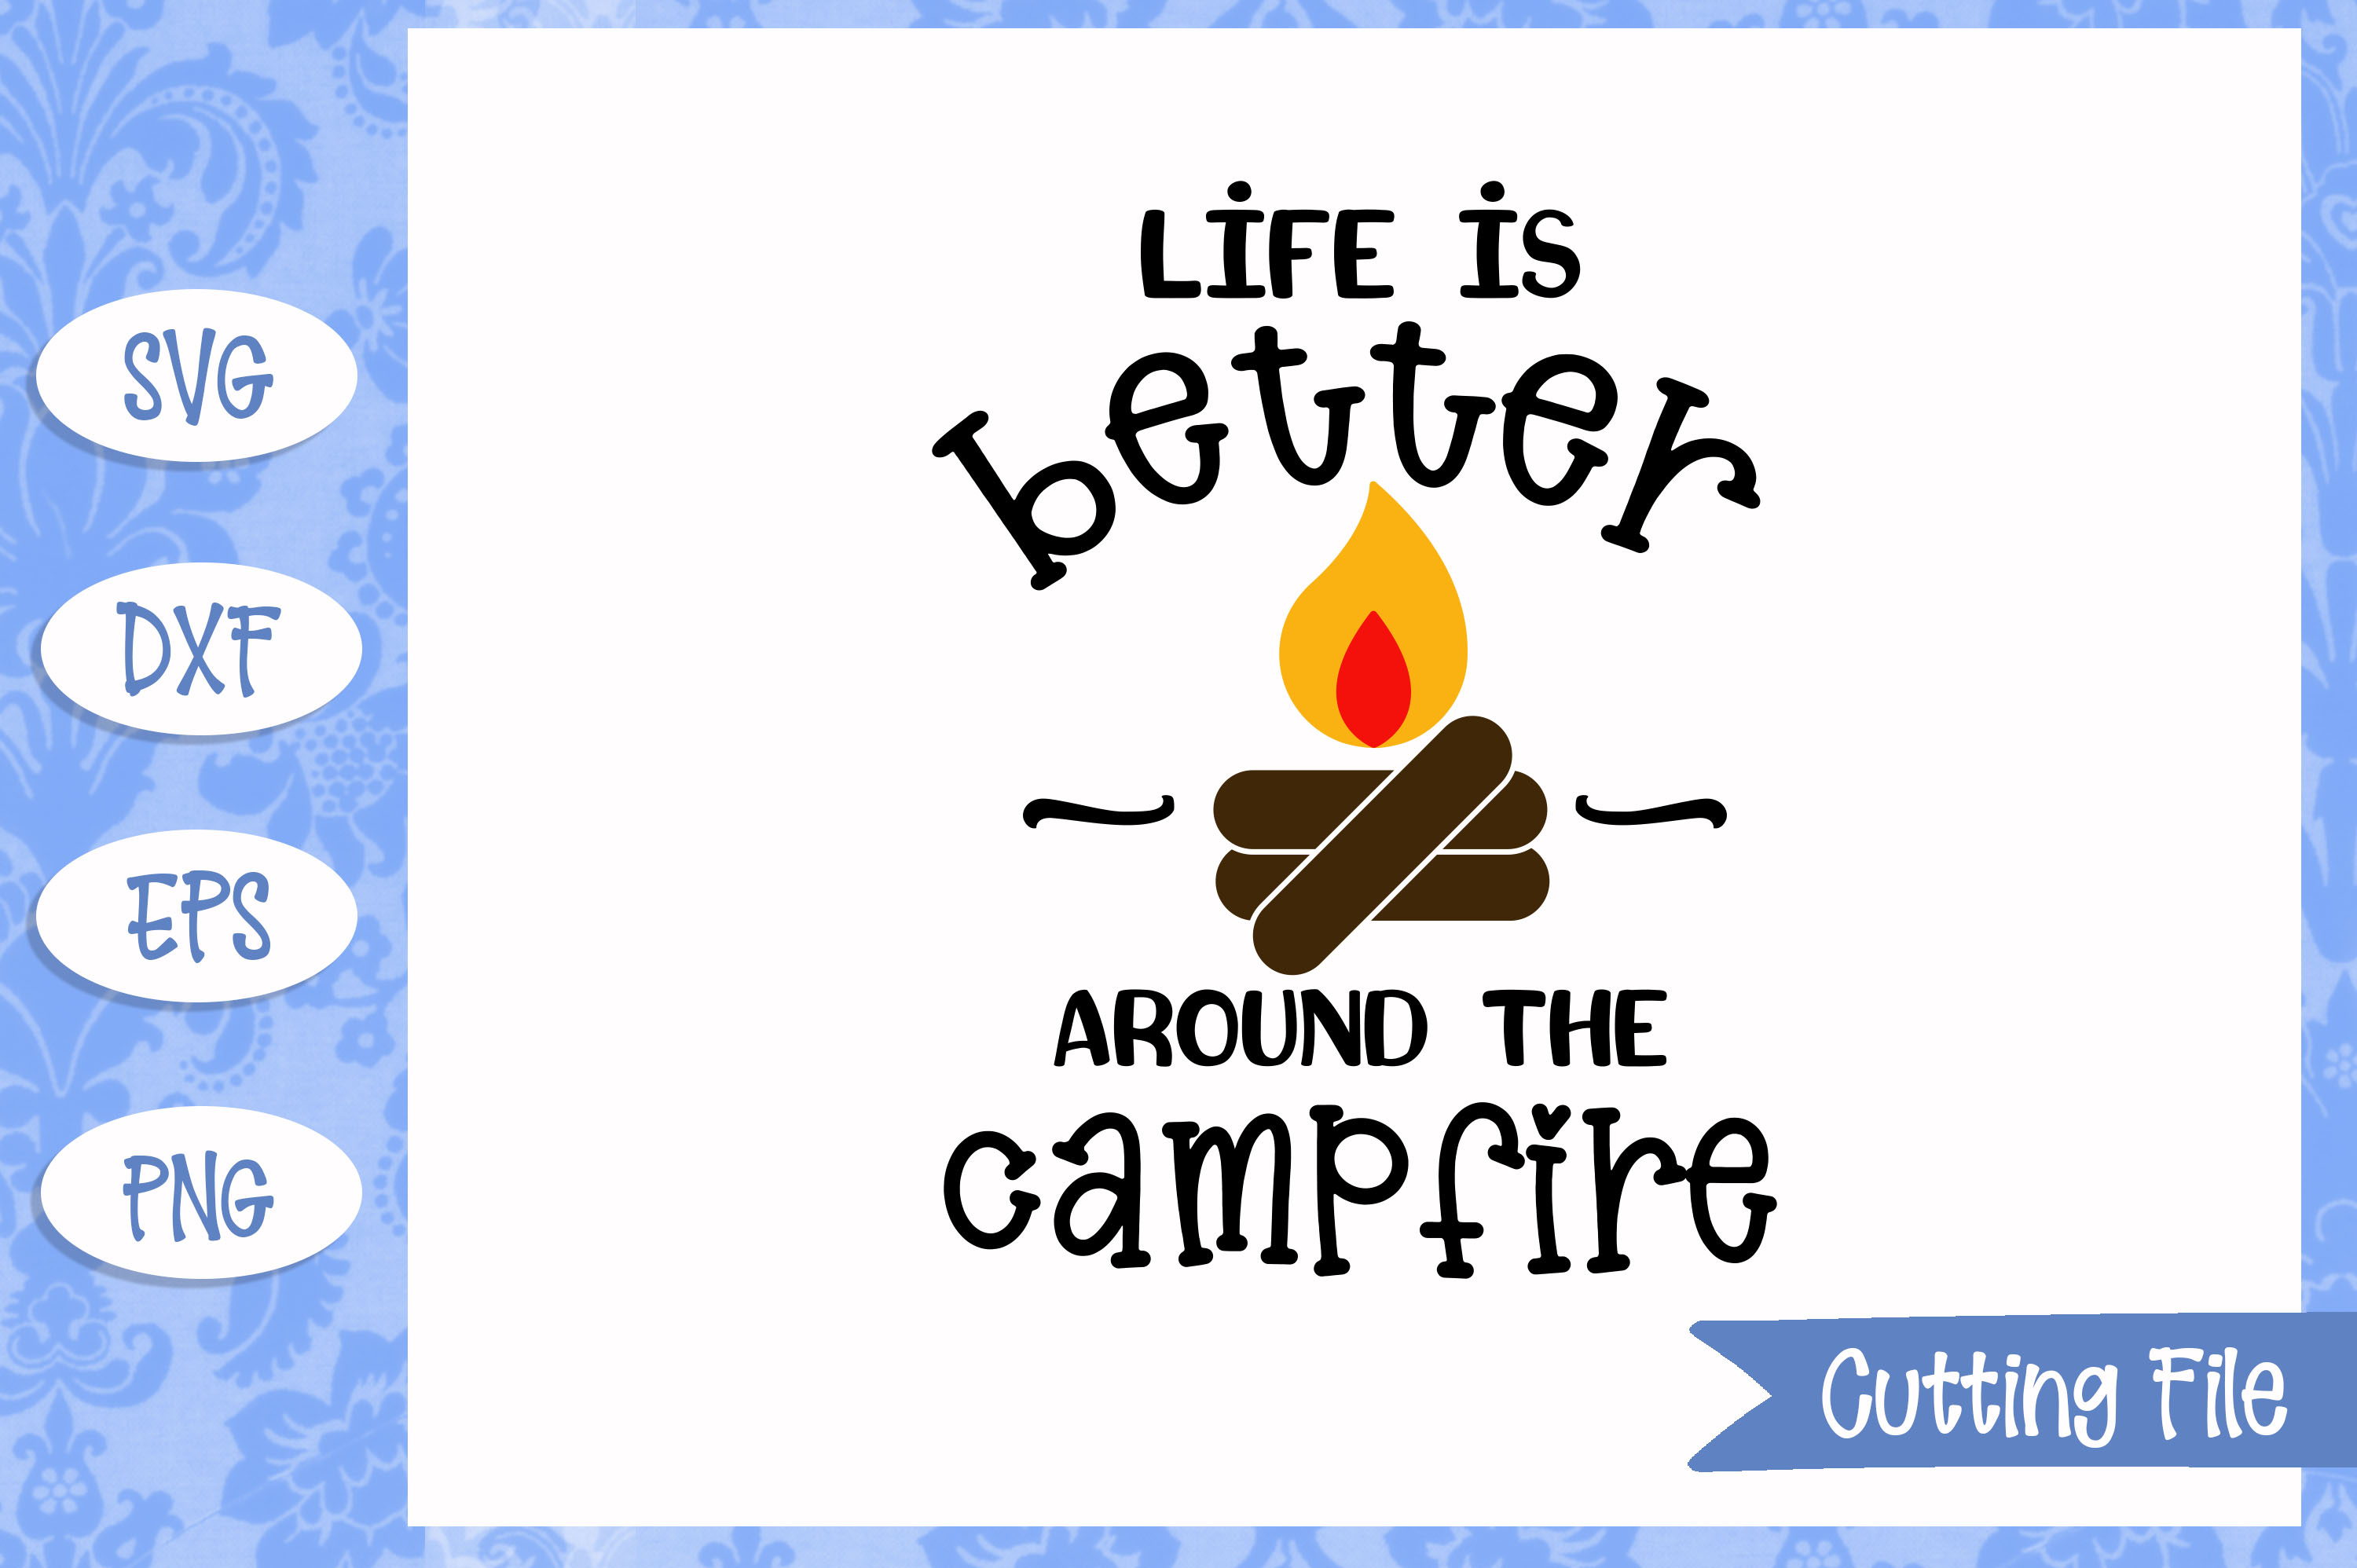 Life is better around the campfire SVG File example image 1